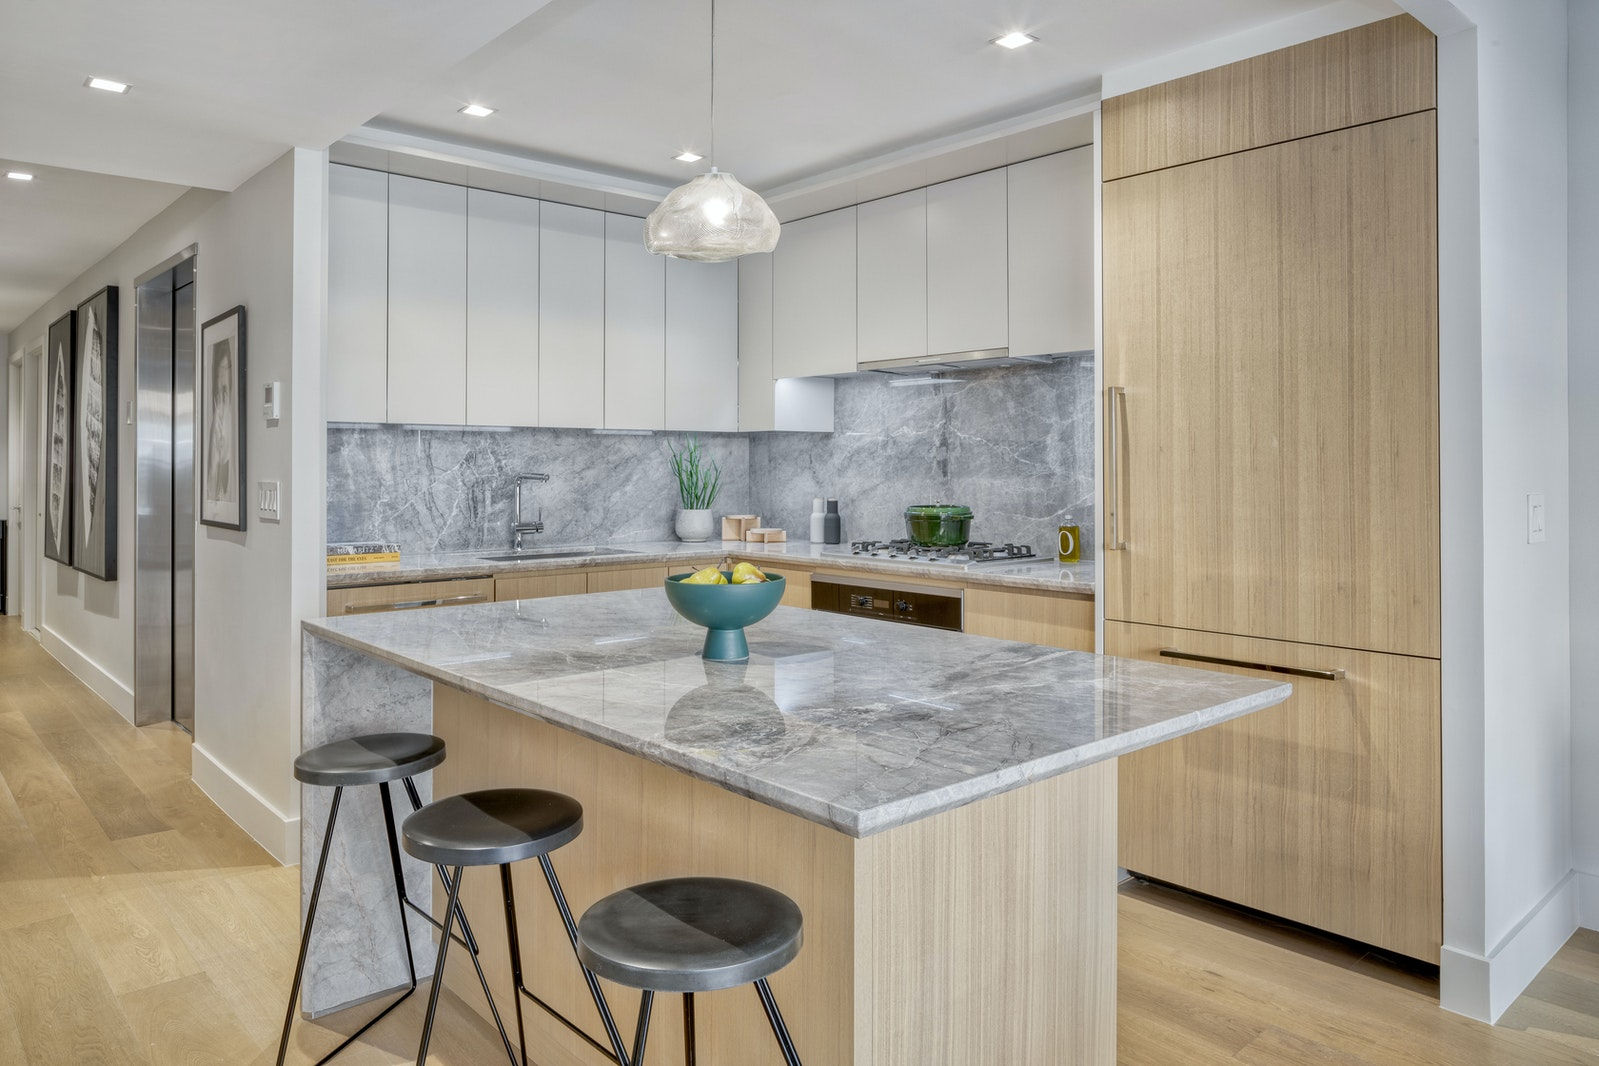 424 West 52nd Street 6, Midtown West, NYC, 10019, $2,369,000, Property For Sale, Halstead Real Estate, Photo 2